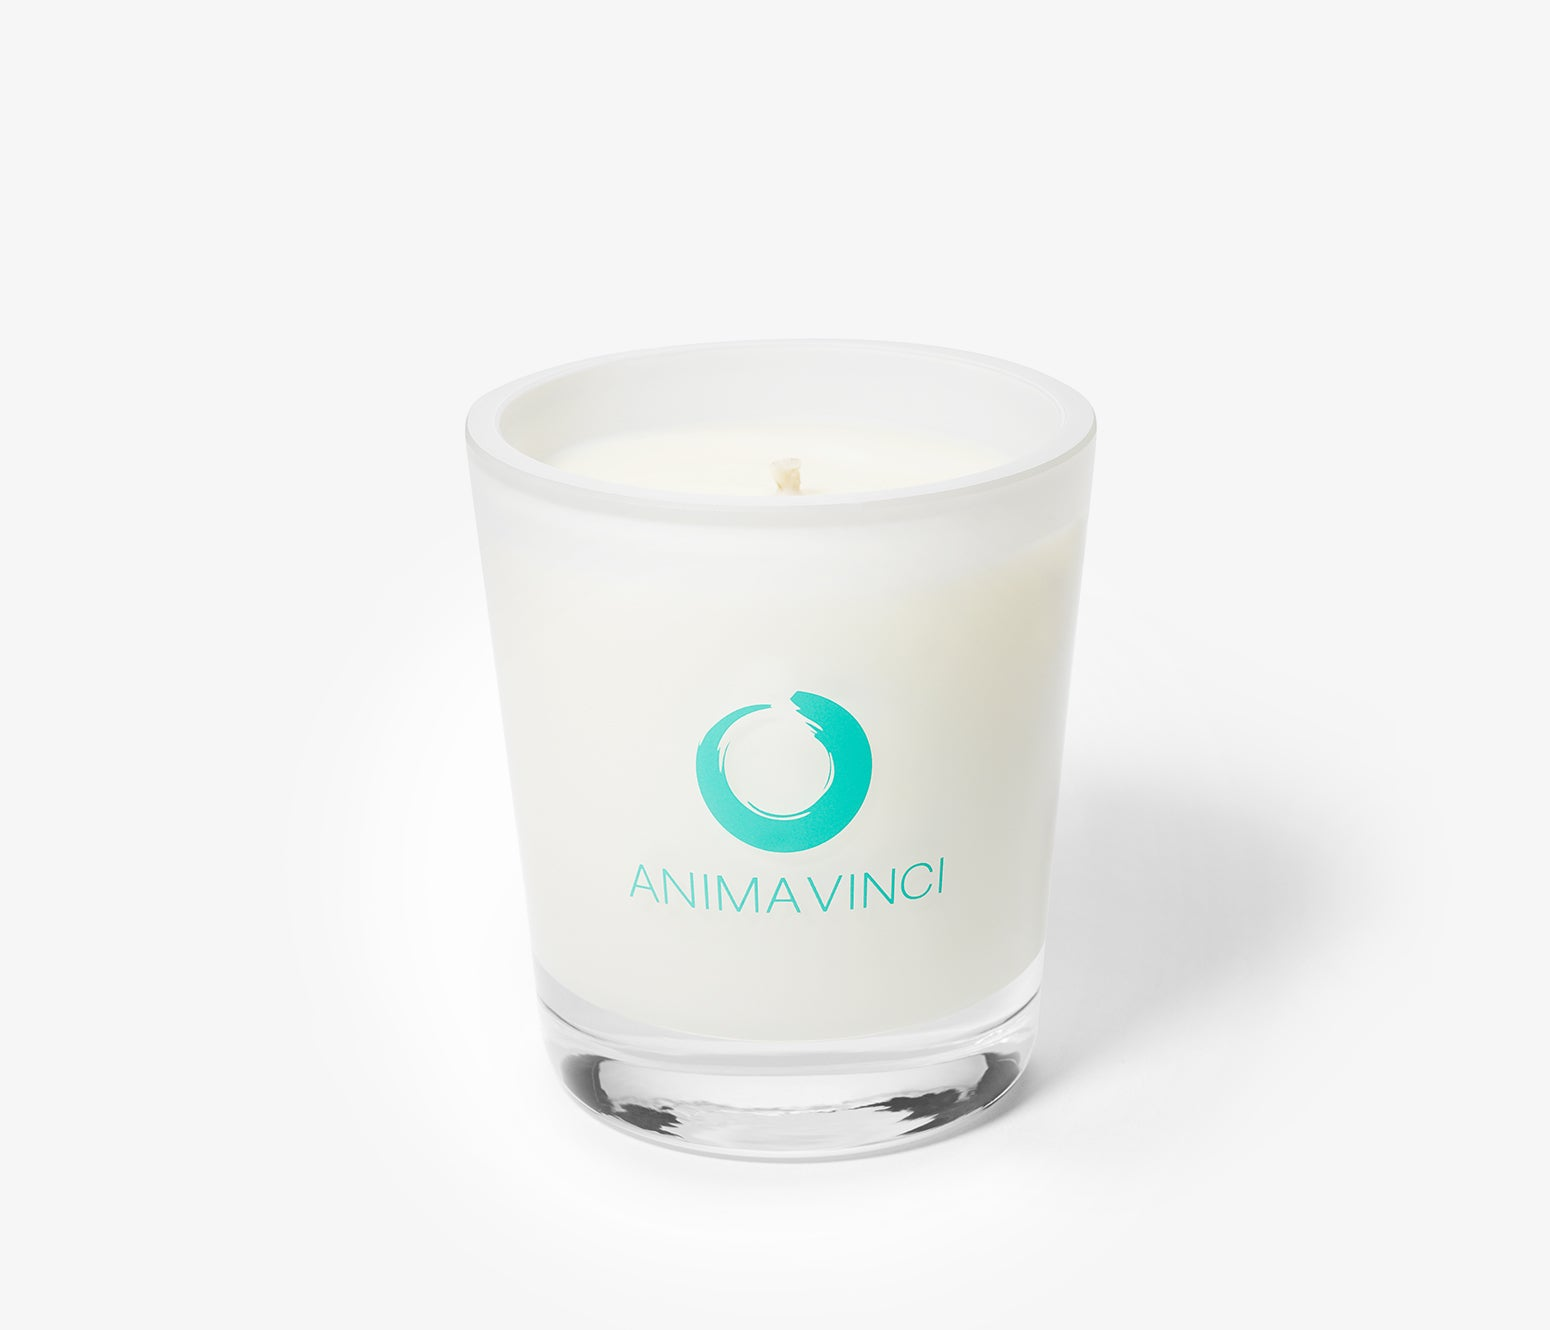 Anima Vinci - Made for Meditation Candle - 290g - UNQ001 - product image - Candle - Les Senteurs